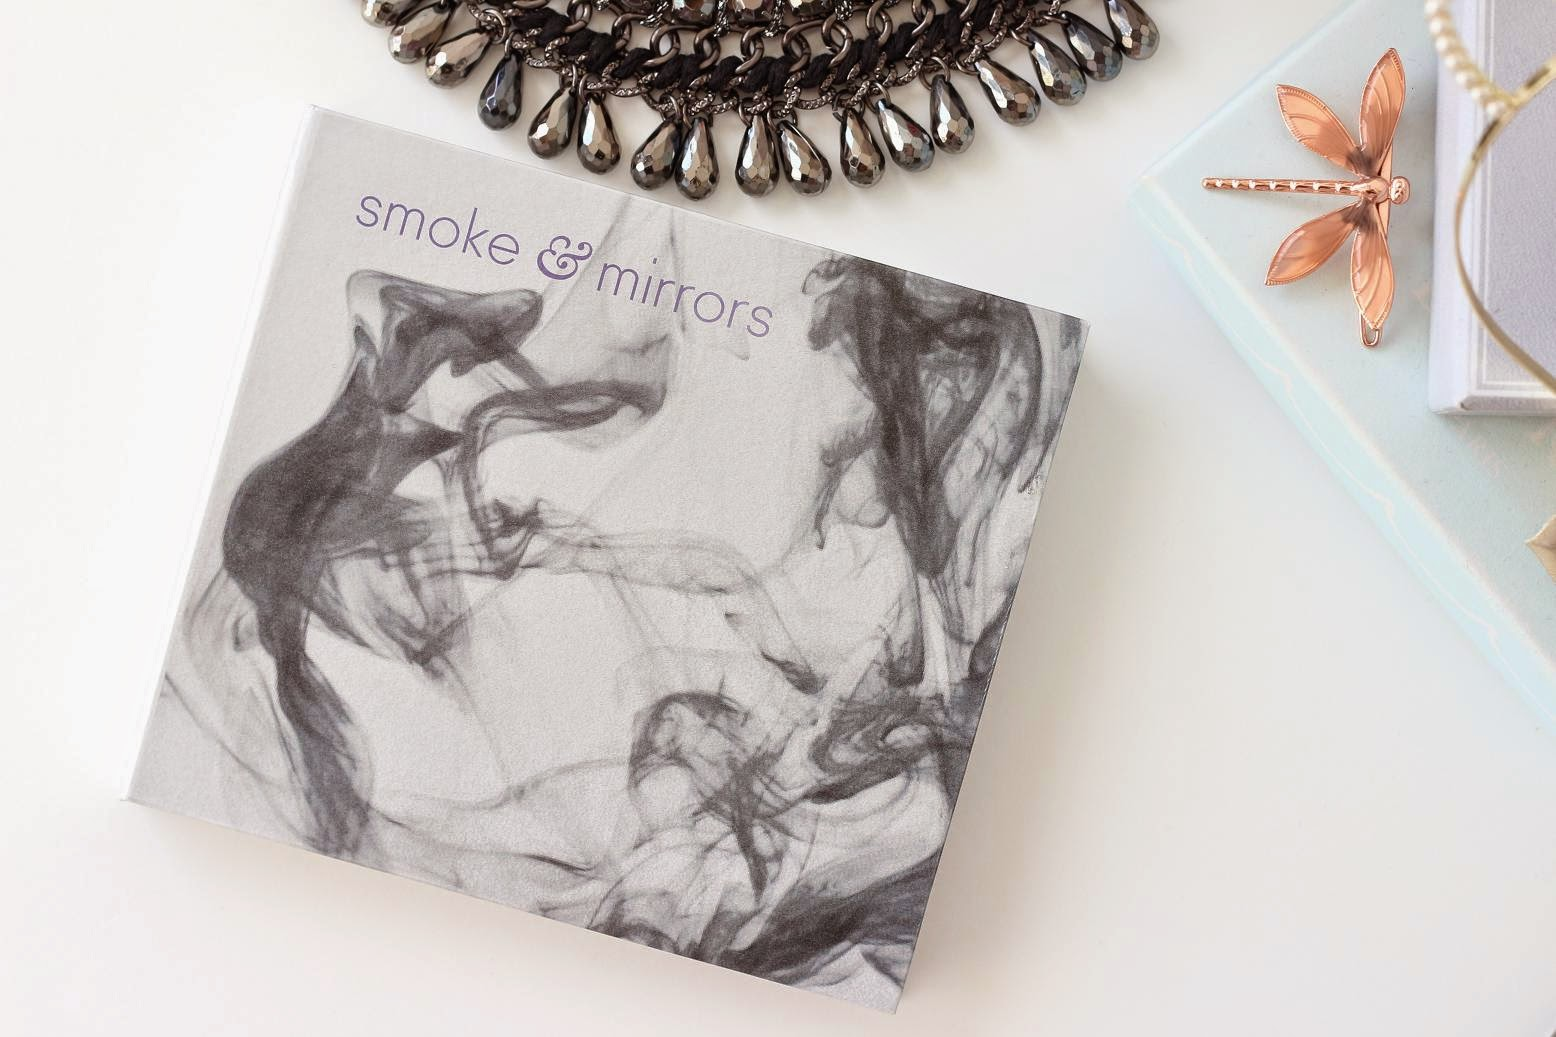 Jane Iredale Smoke & Mirrors Smoky Eye Kit